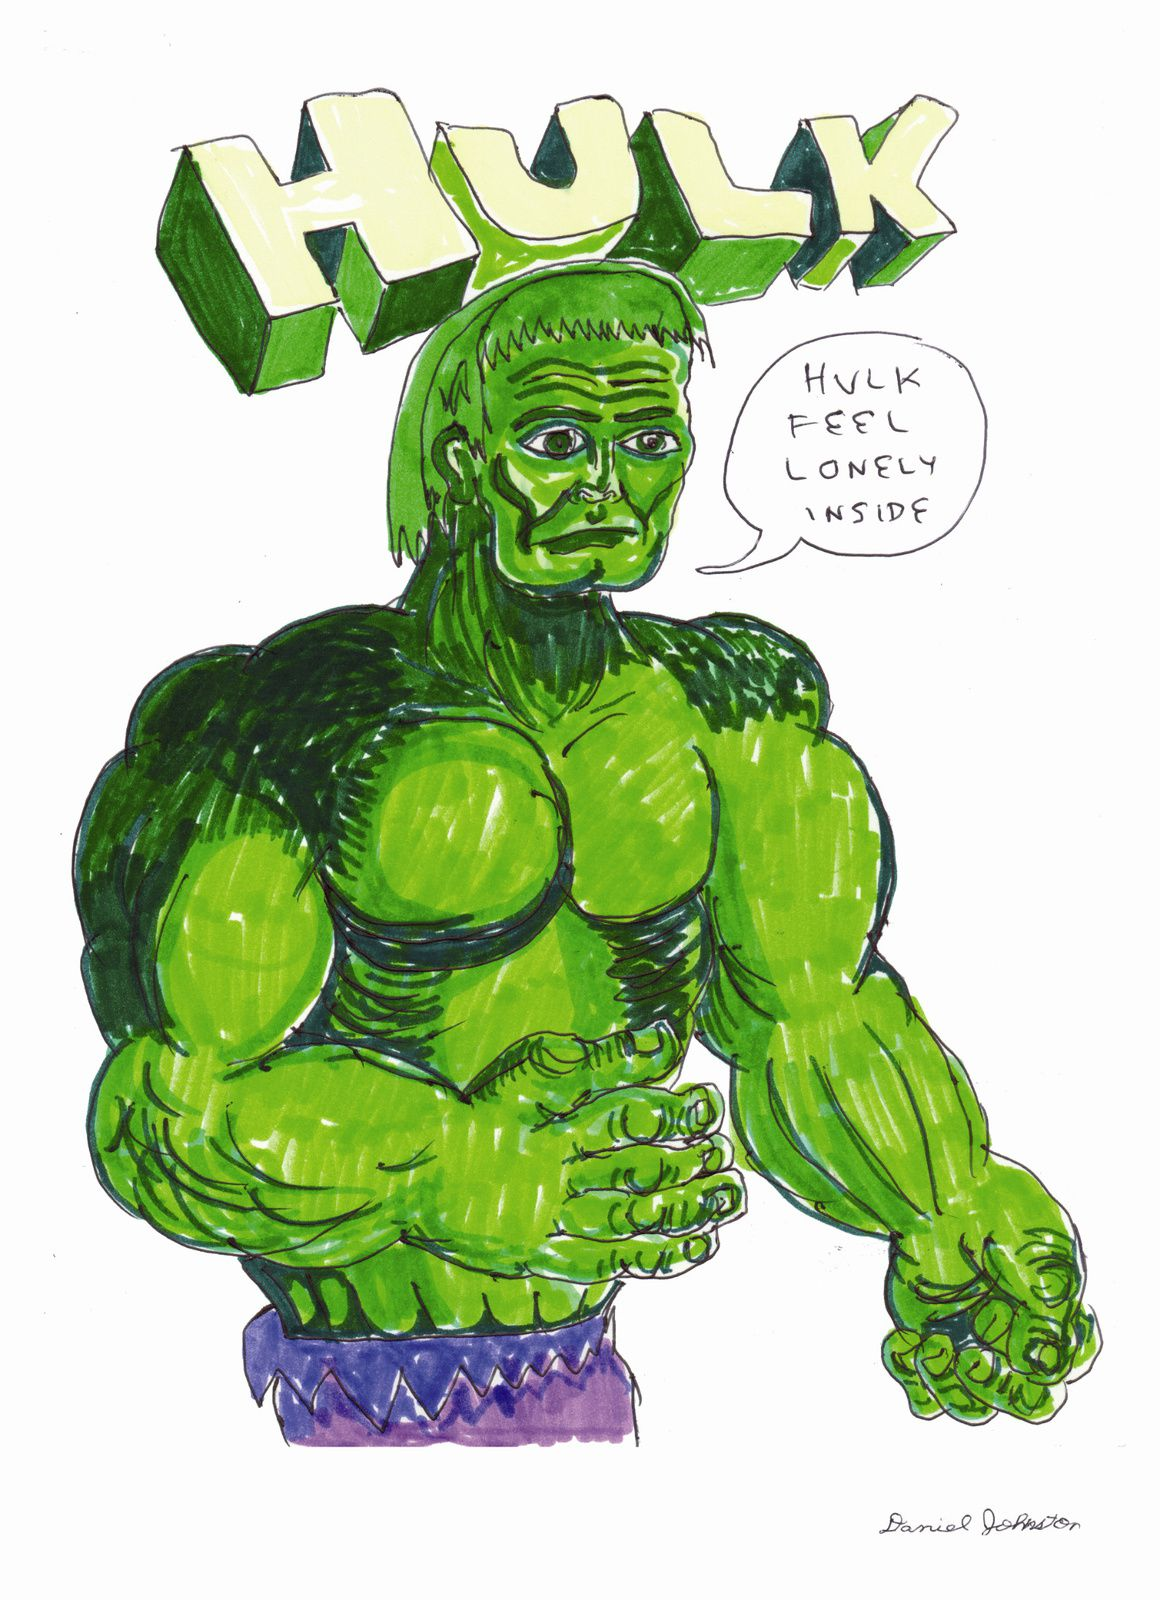 Hulk feel lonely inside, 2012